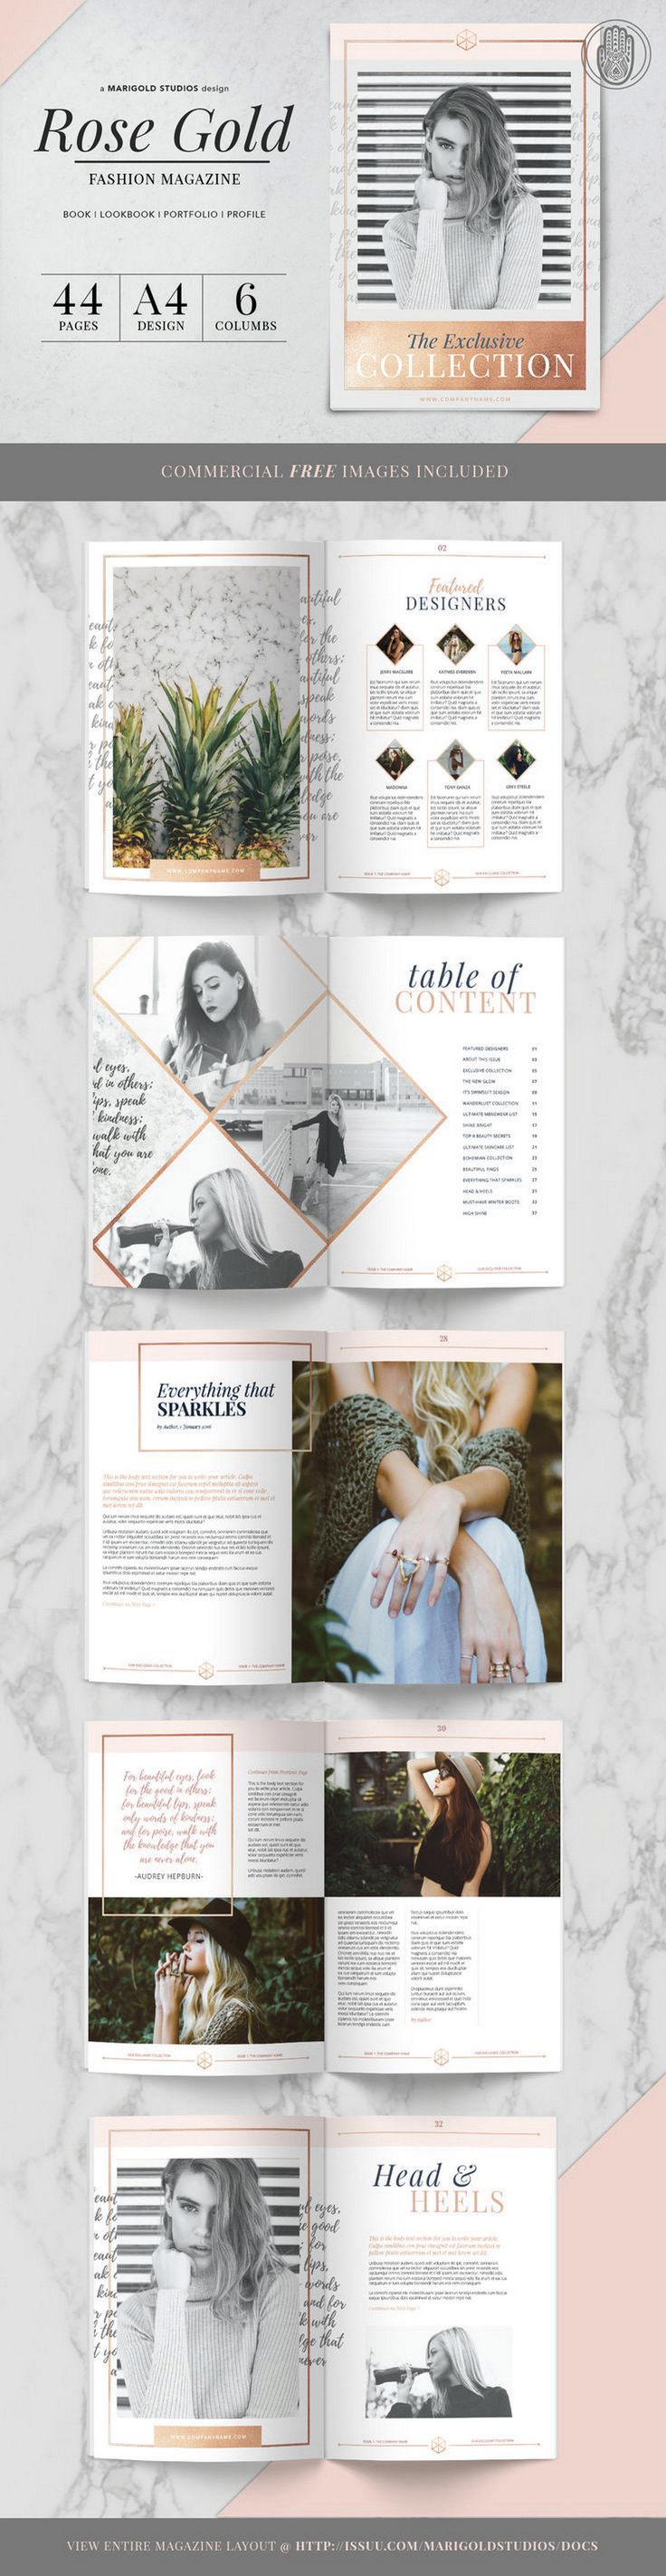 How to Get Started with Magazine Layout Design – Sarah Last